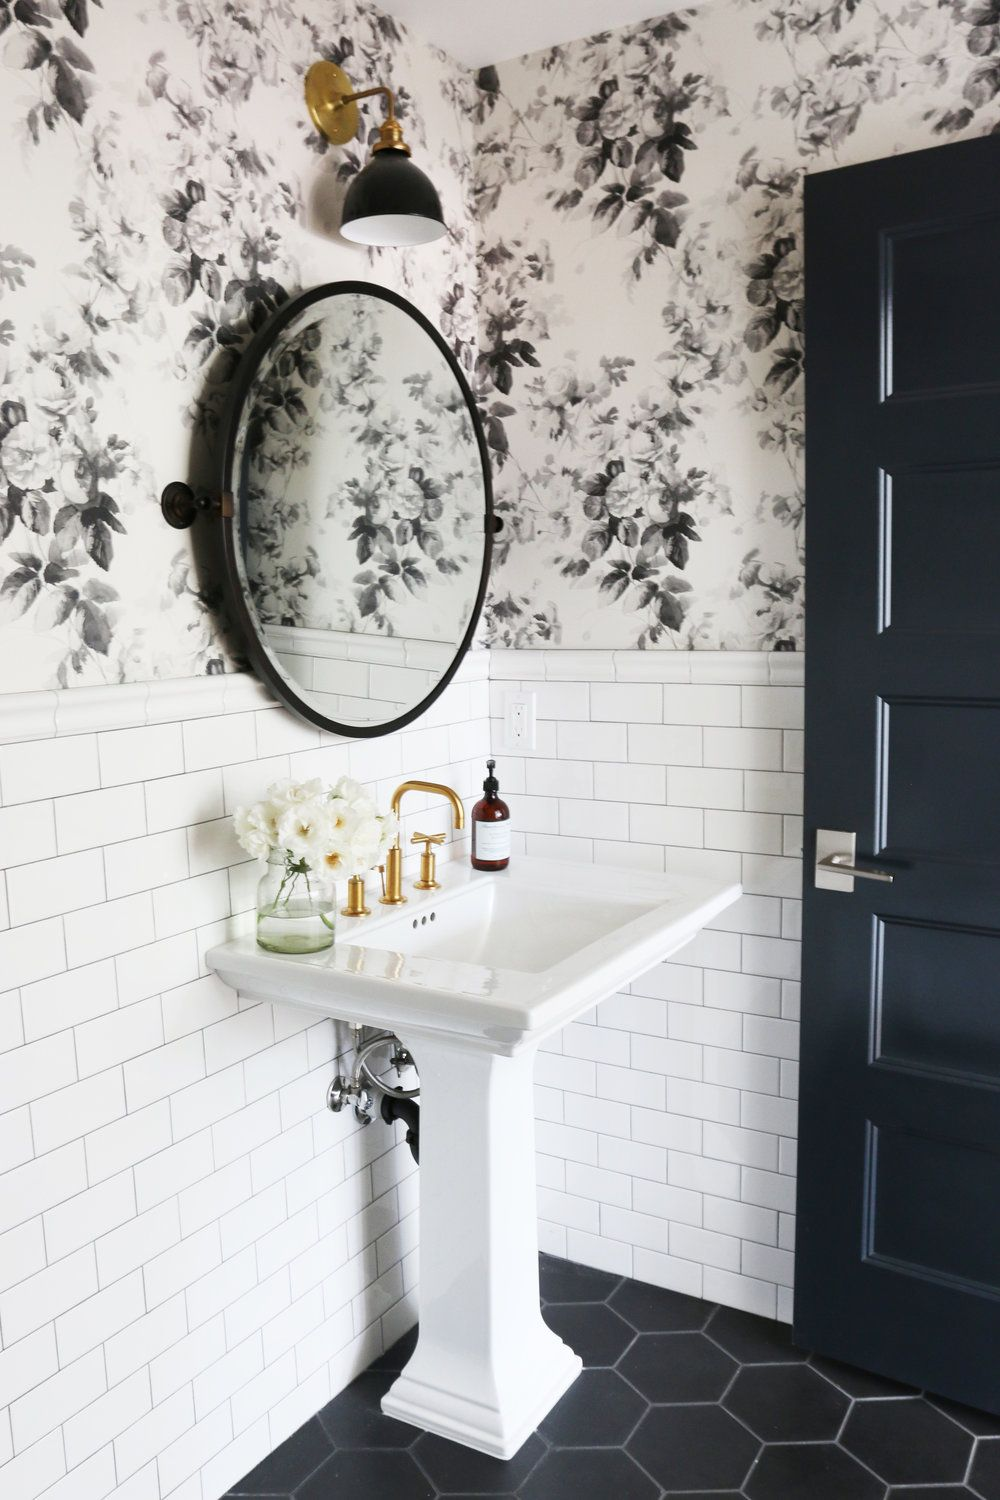 5 Tips for a Small Bathroom | Pinterest | Studio mcgee, Small ...